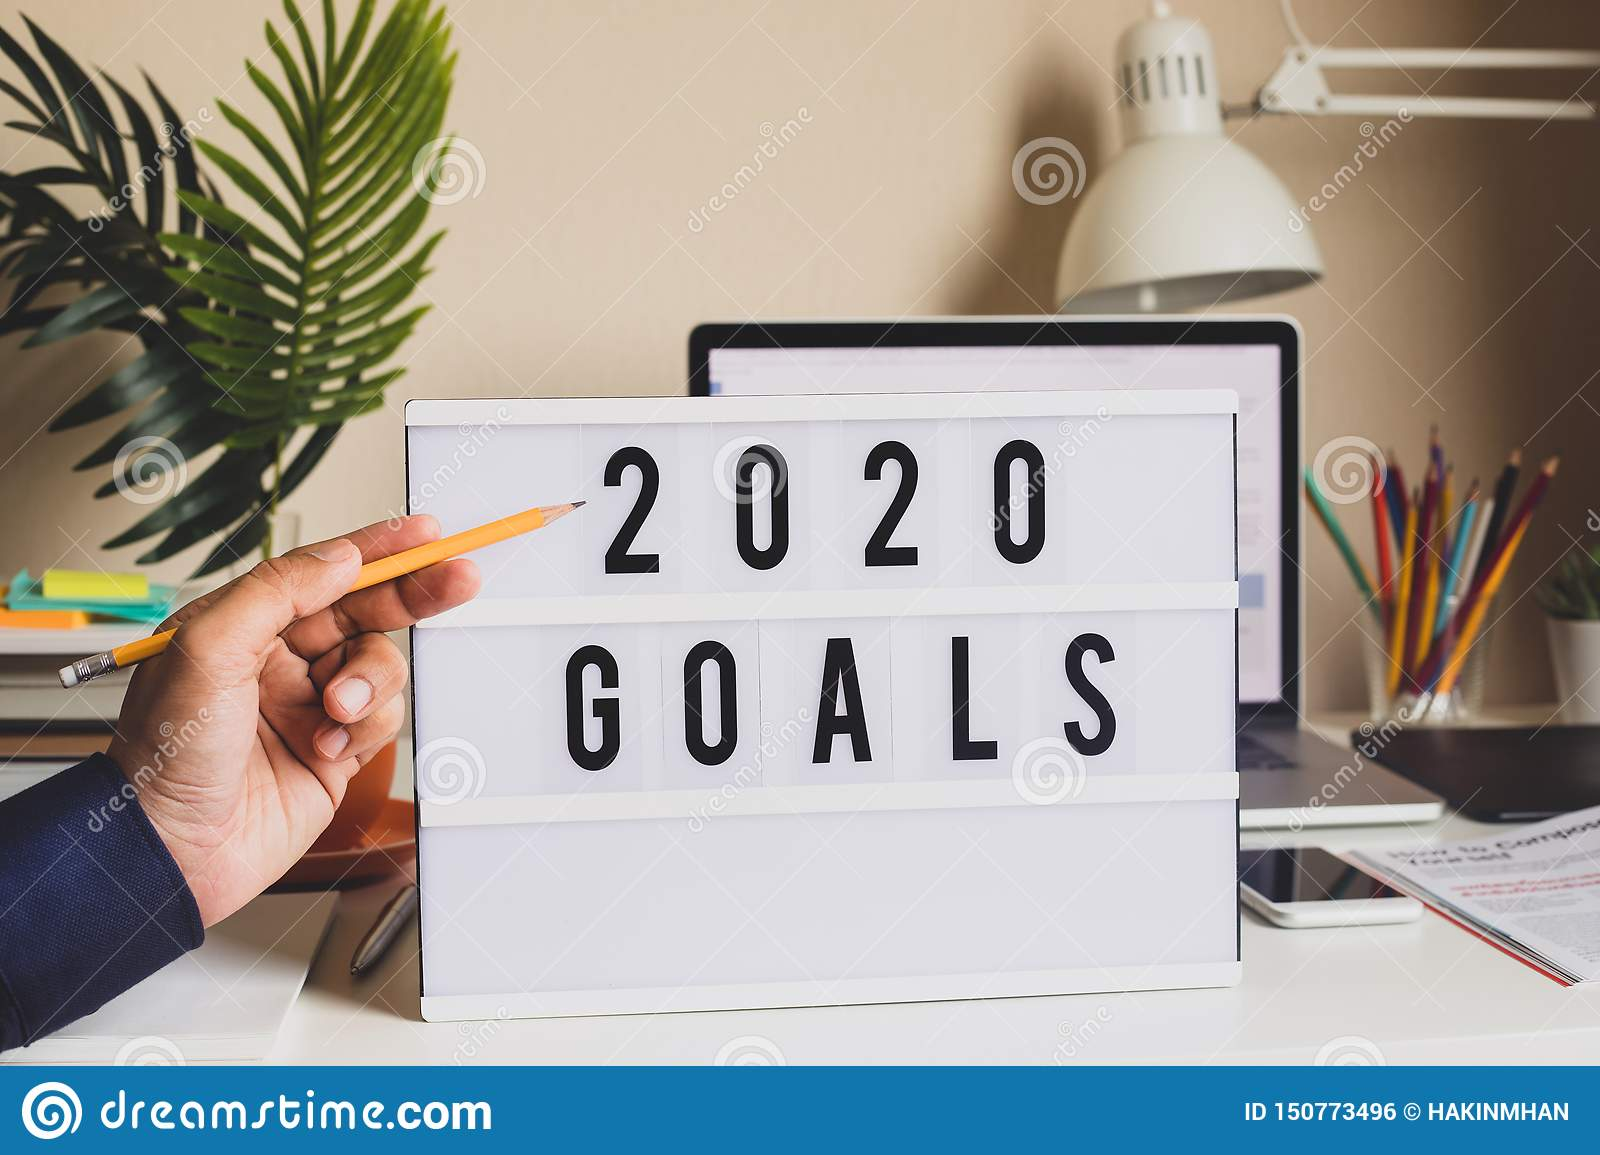 Business Use Of Home 2020.2020 Goals Text On Light Box On Desk Table In Home Office